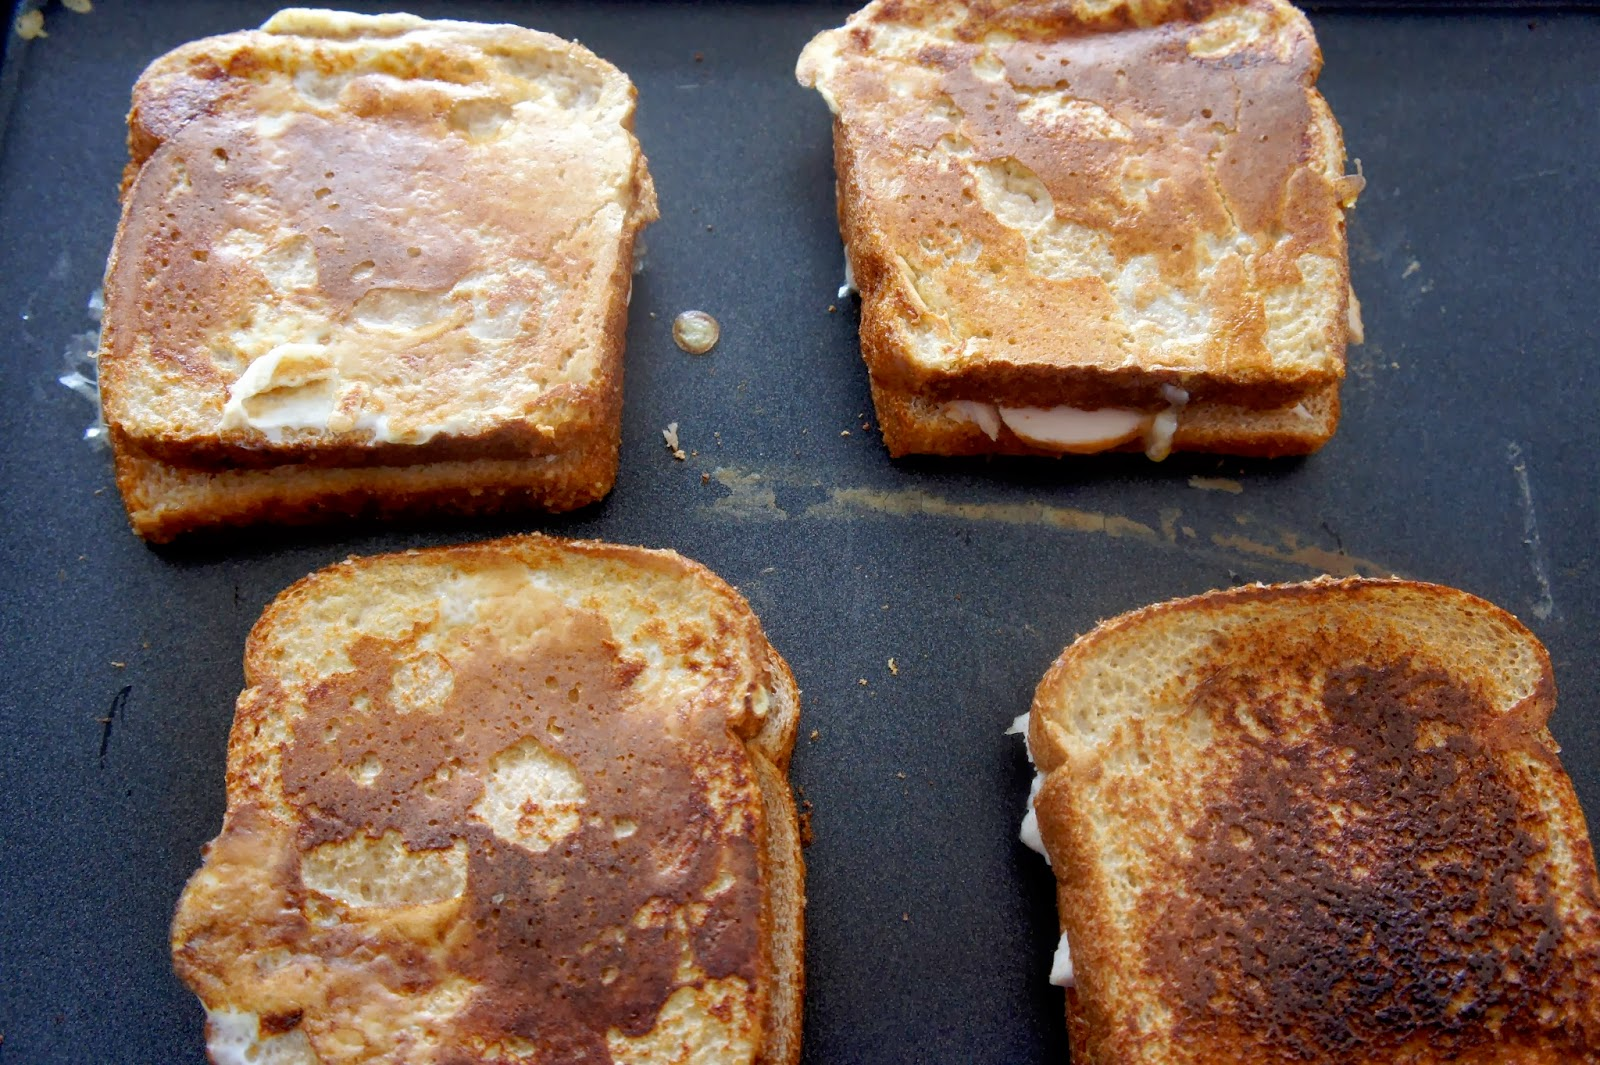 Savory Sweet and Satisfying: French Toast Sandwiches